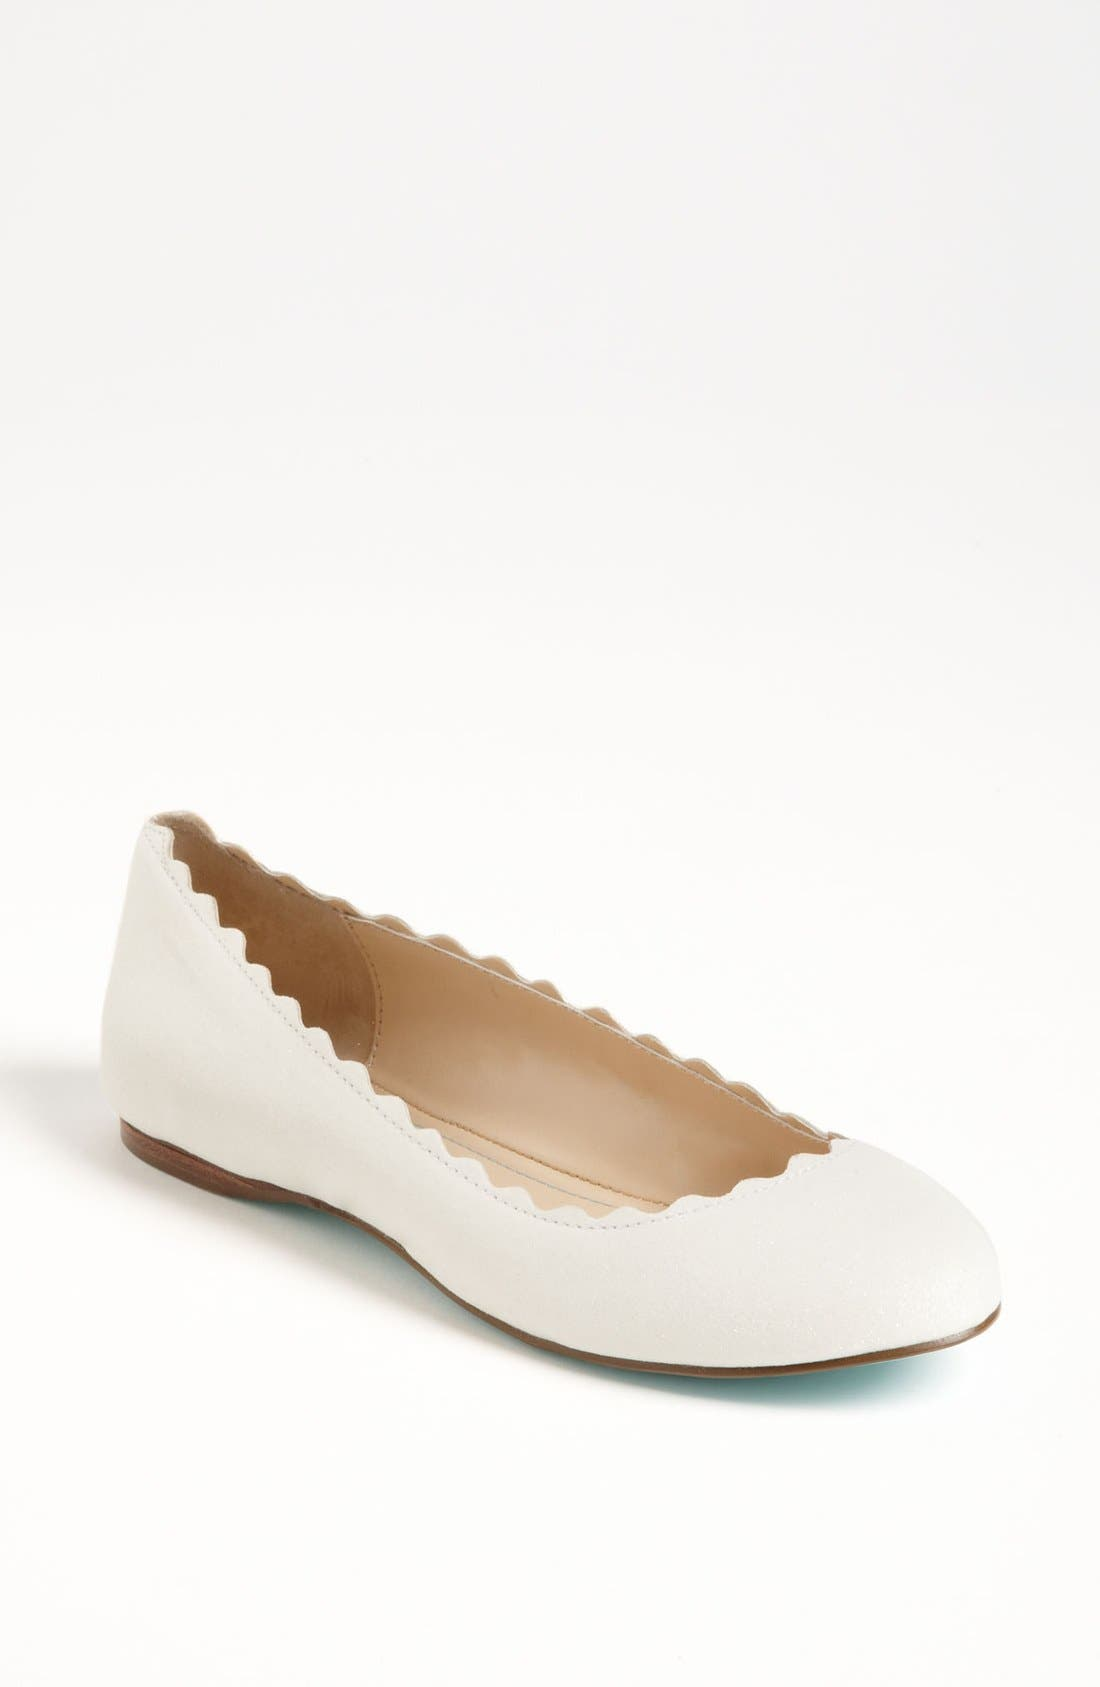 Main Image - Blue by Betsey Johnson 'Dance' Flat